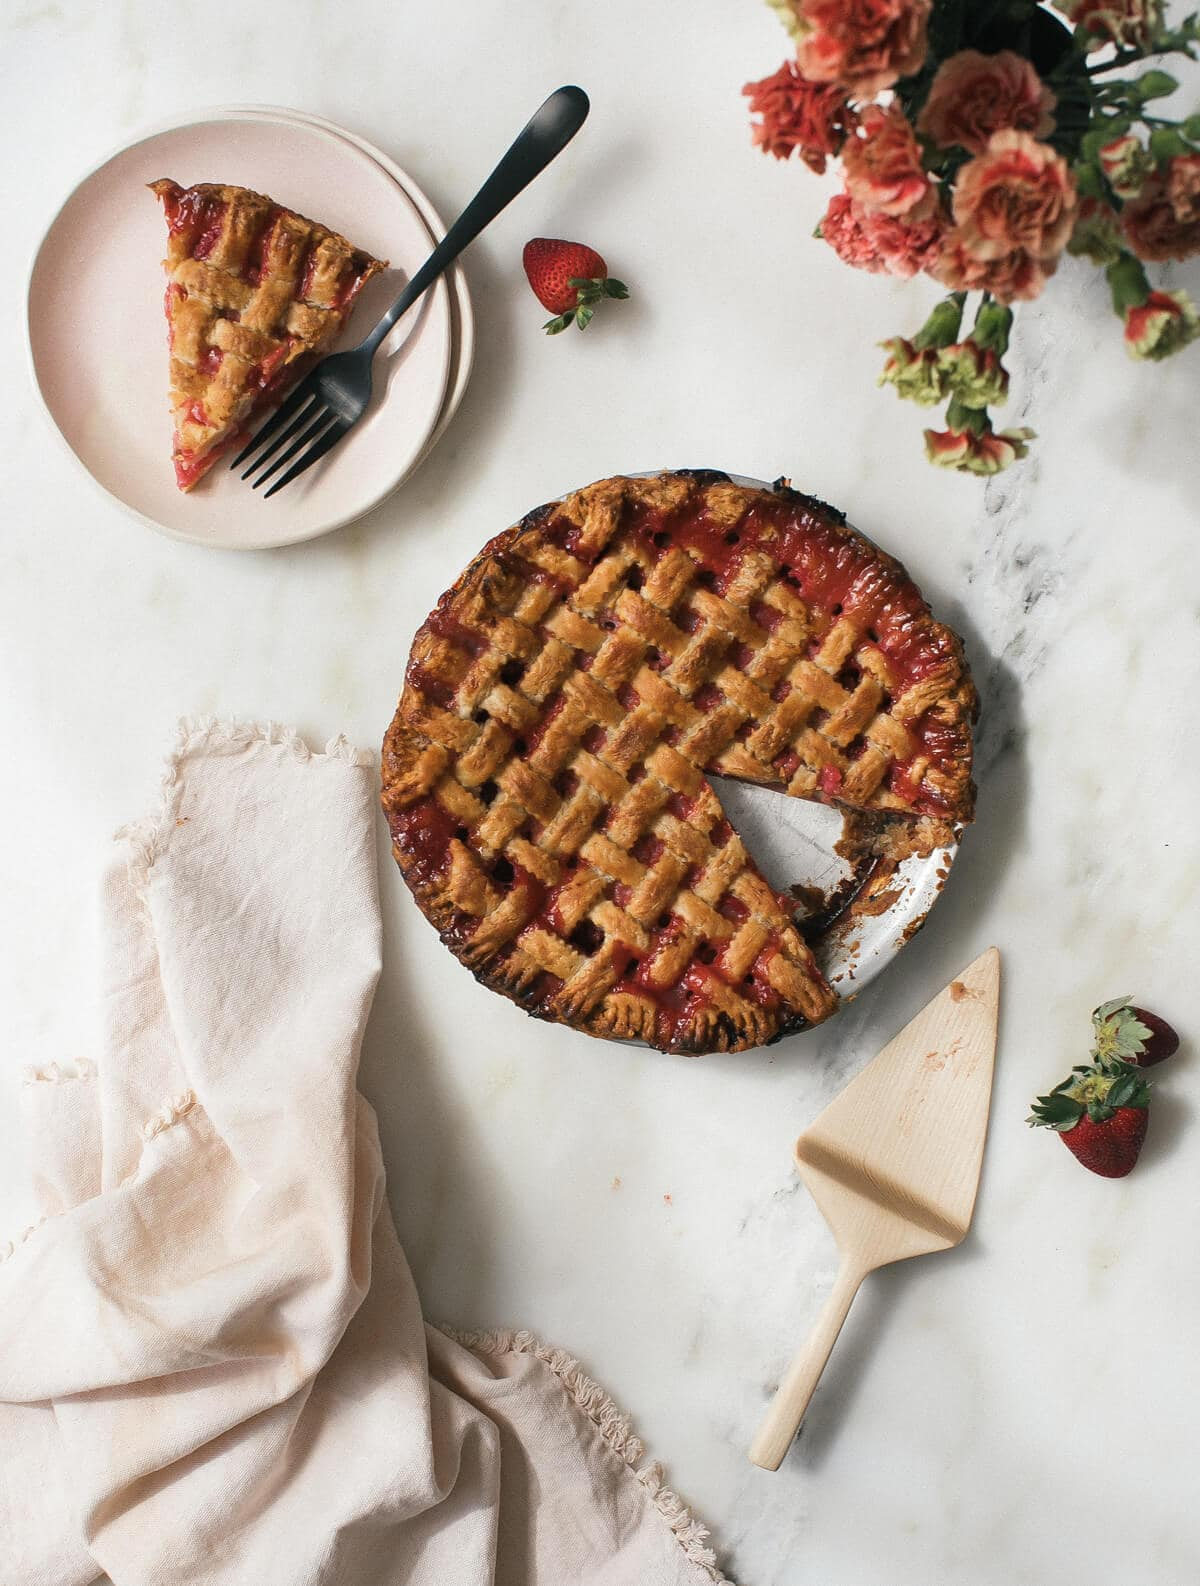 Rhubarb Strawberry Pink Peppercorn Pie